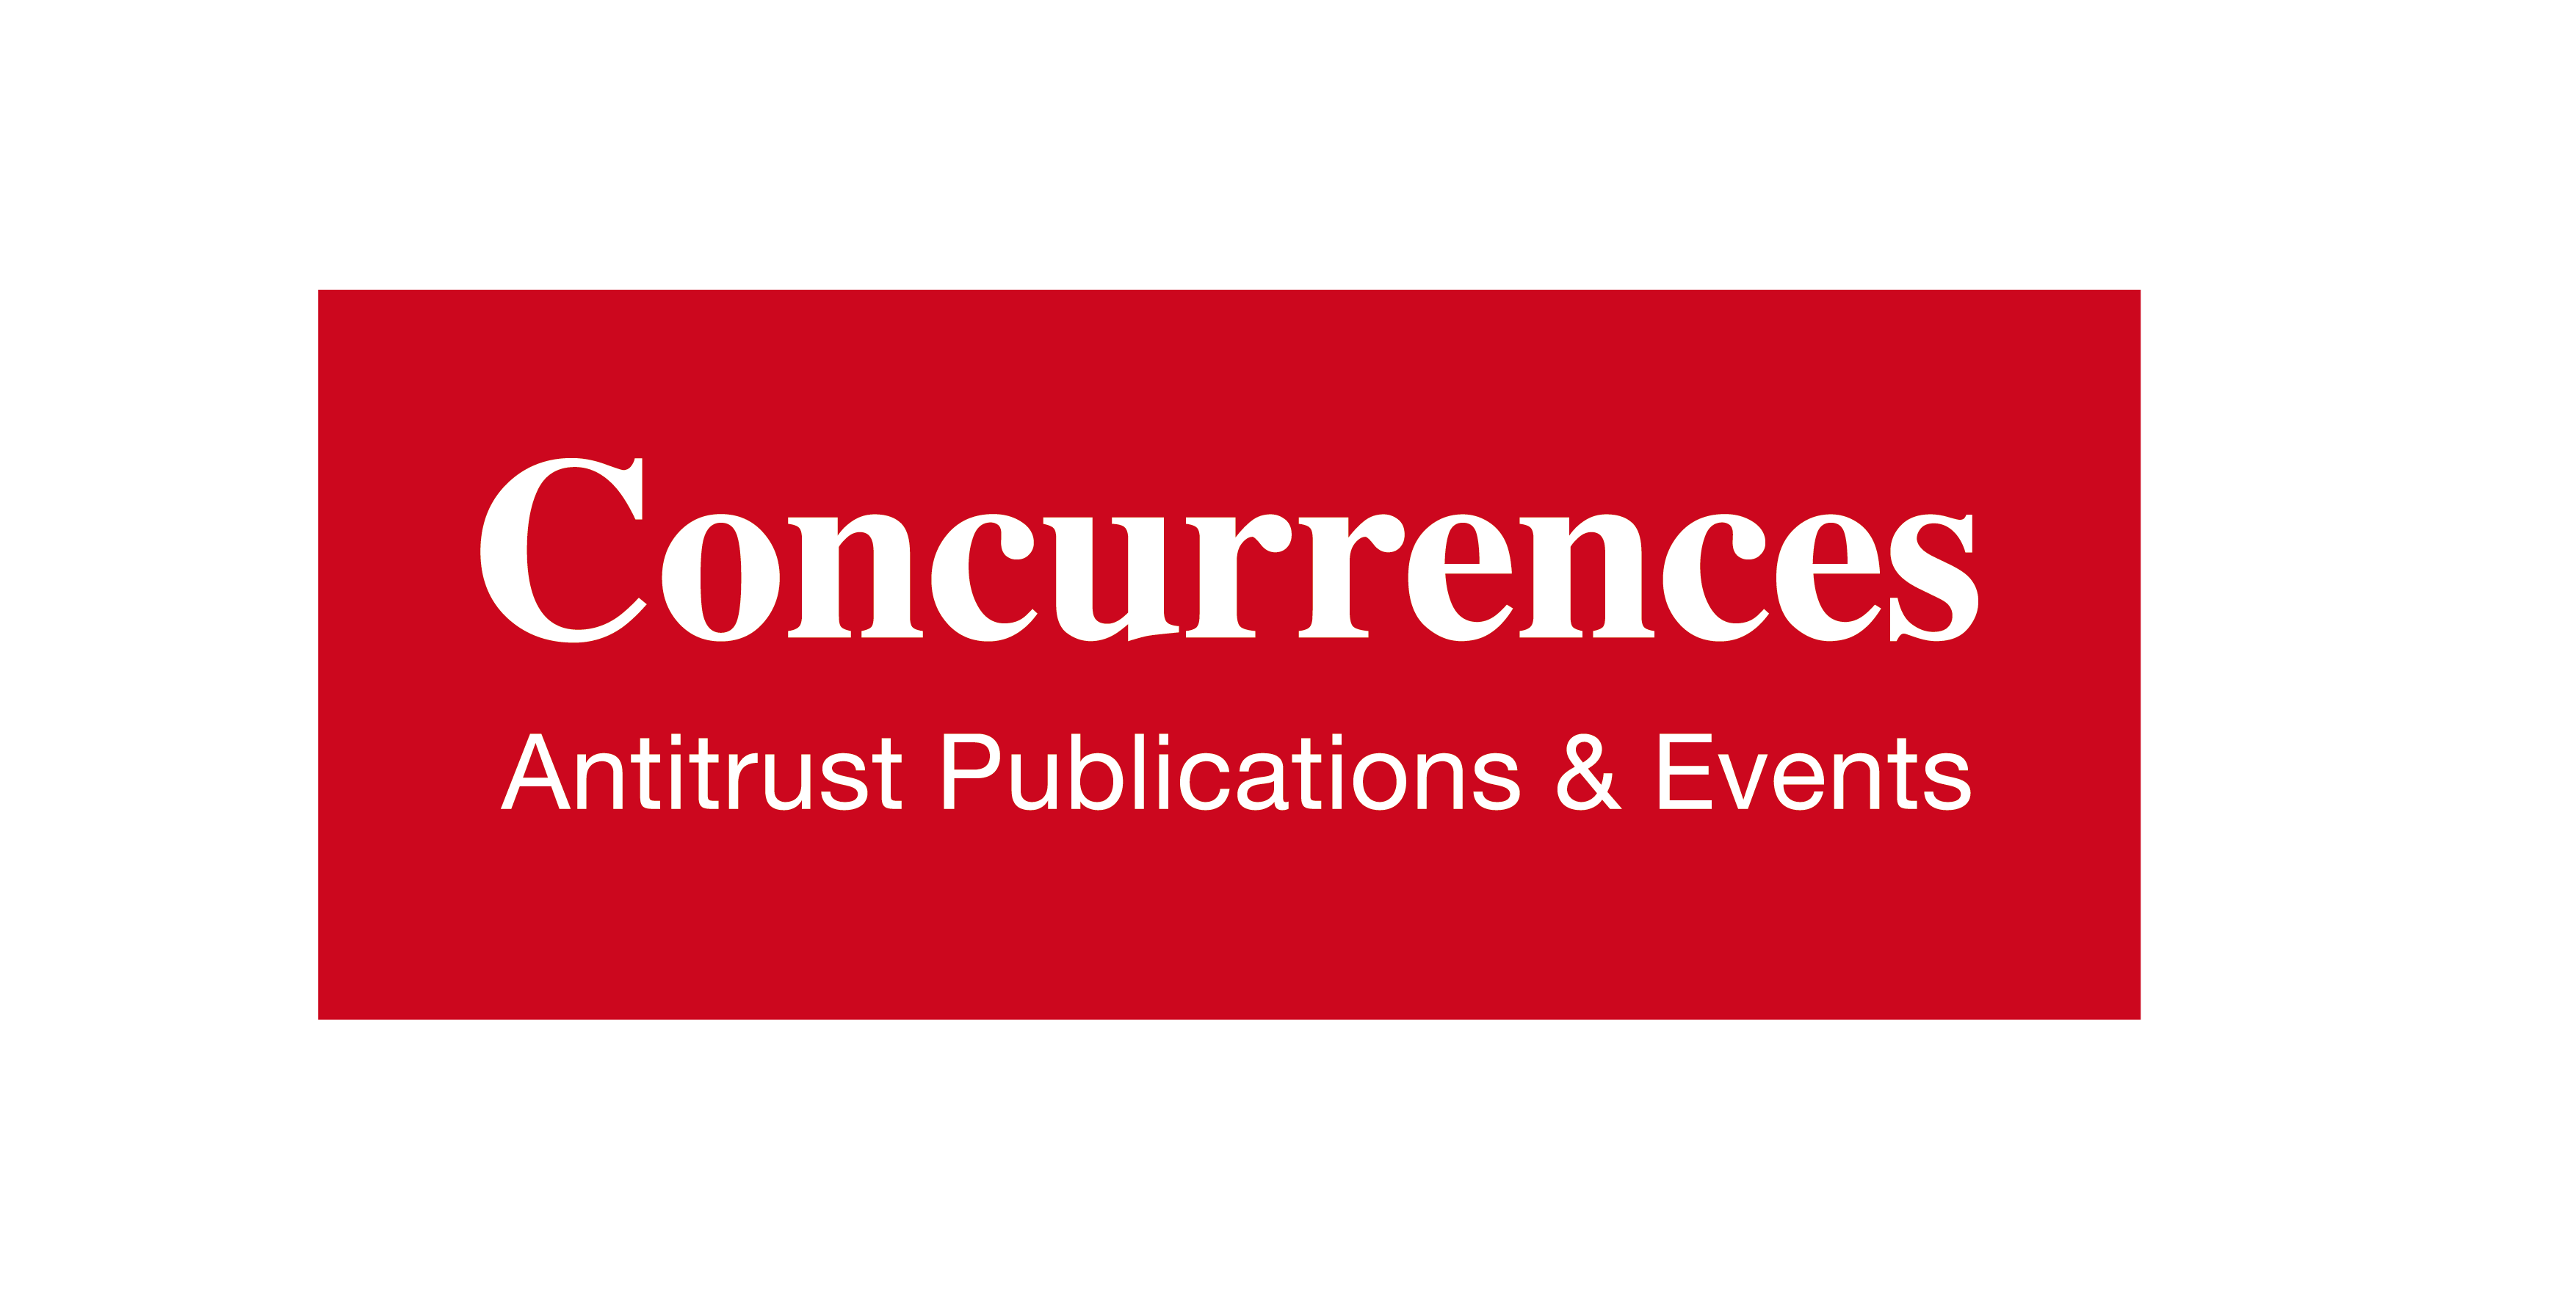 Concurrences